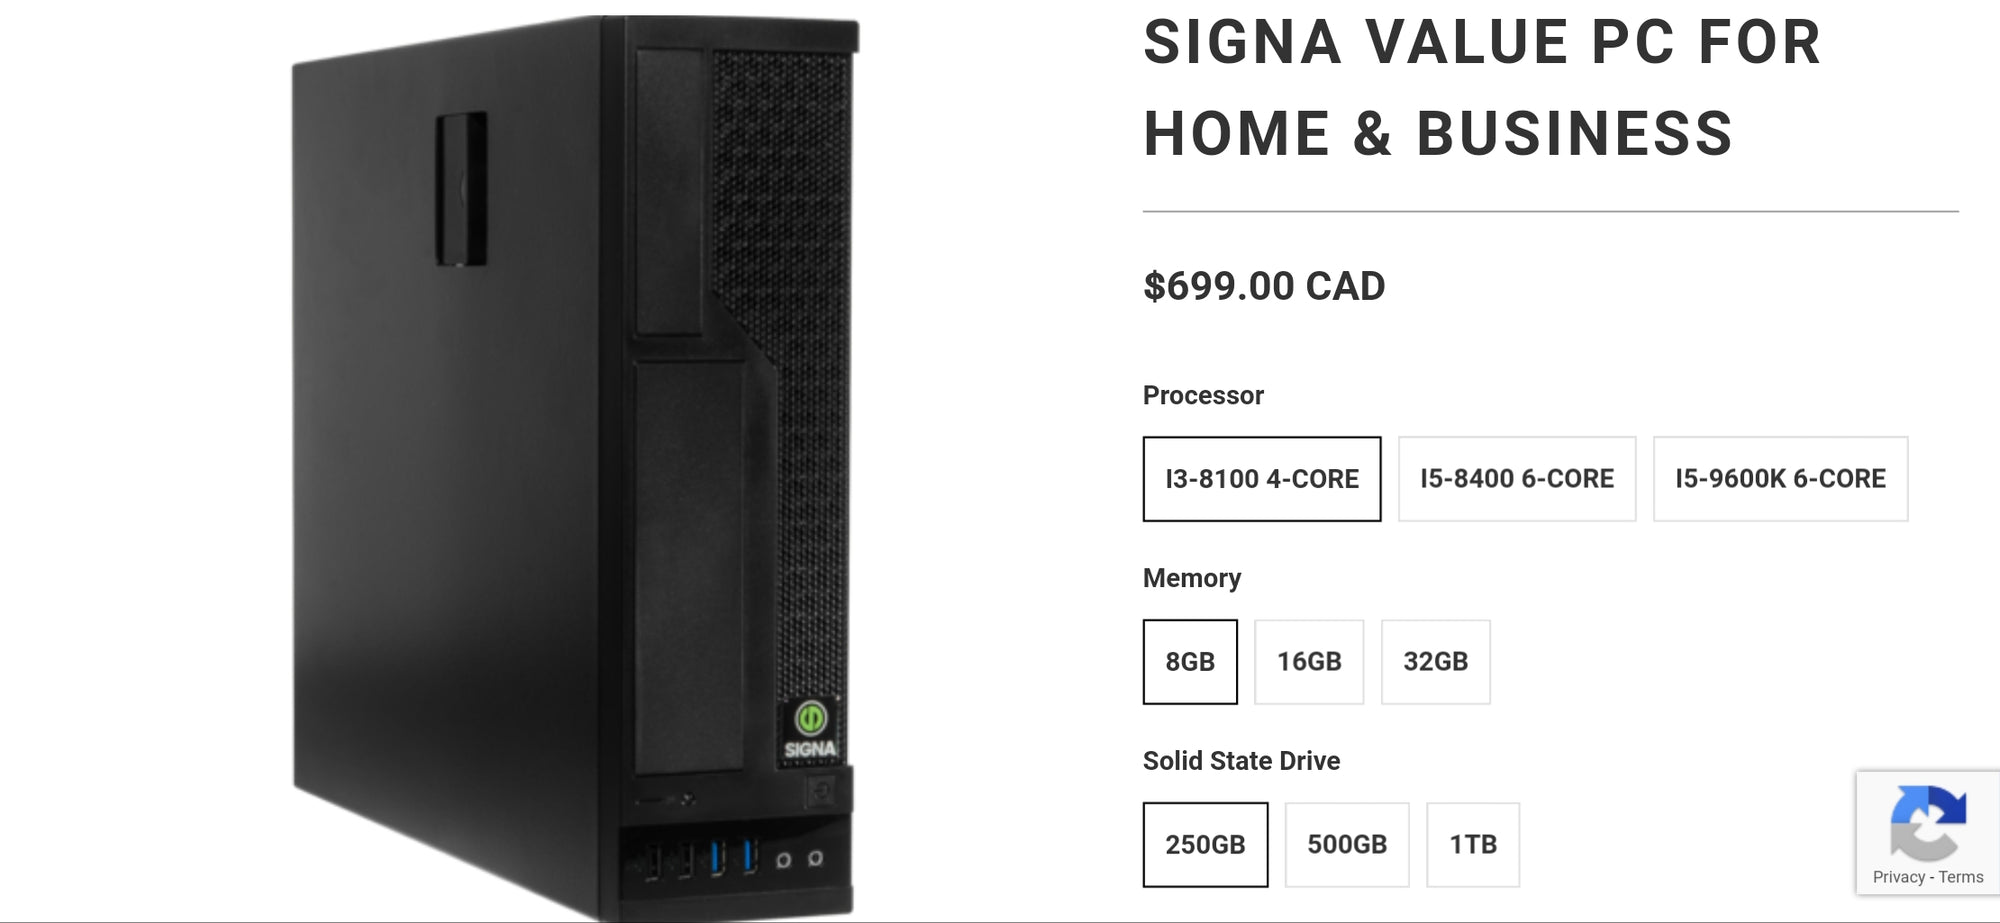 Price drop on our best selling home and office PC!